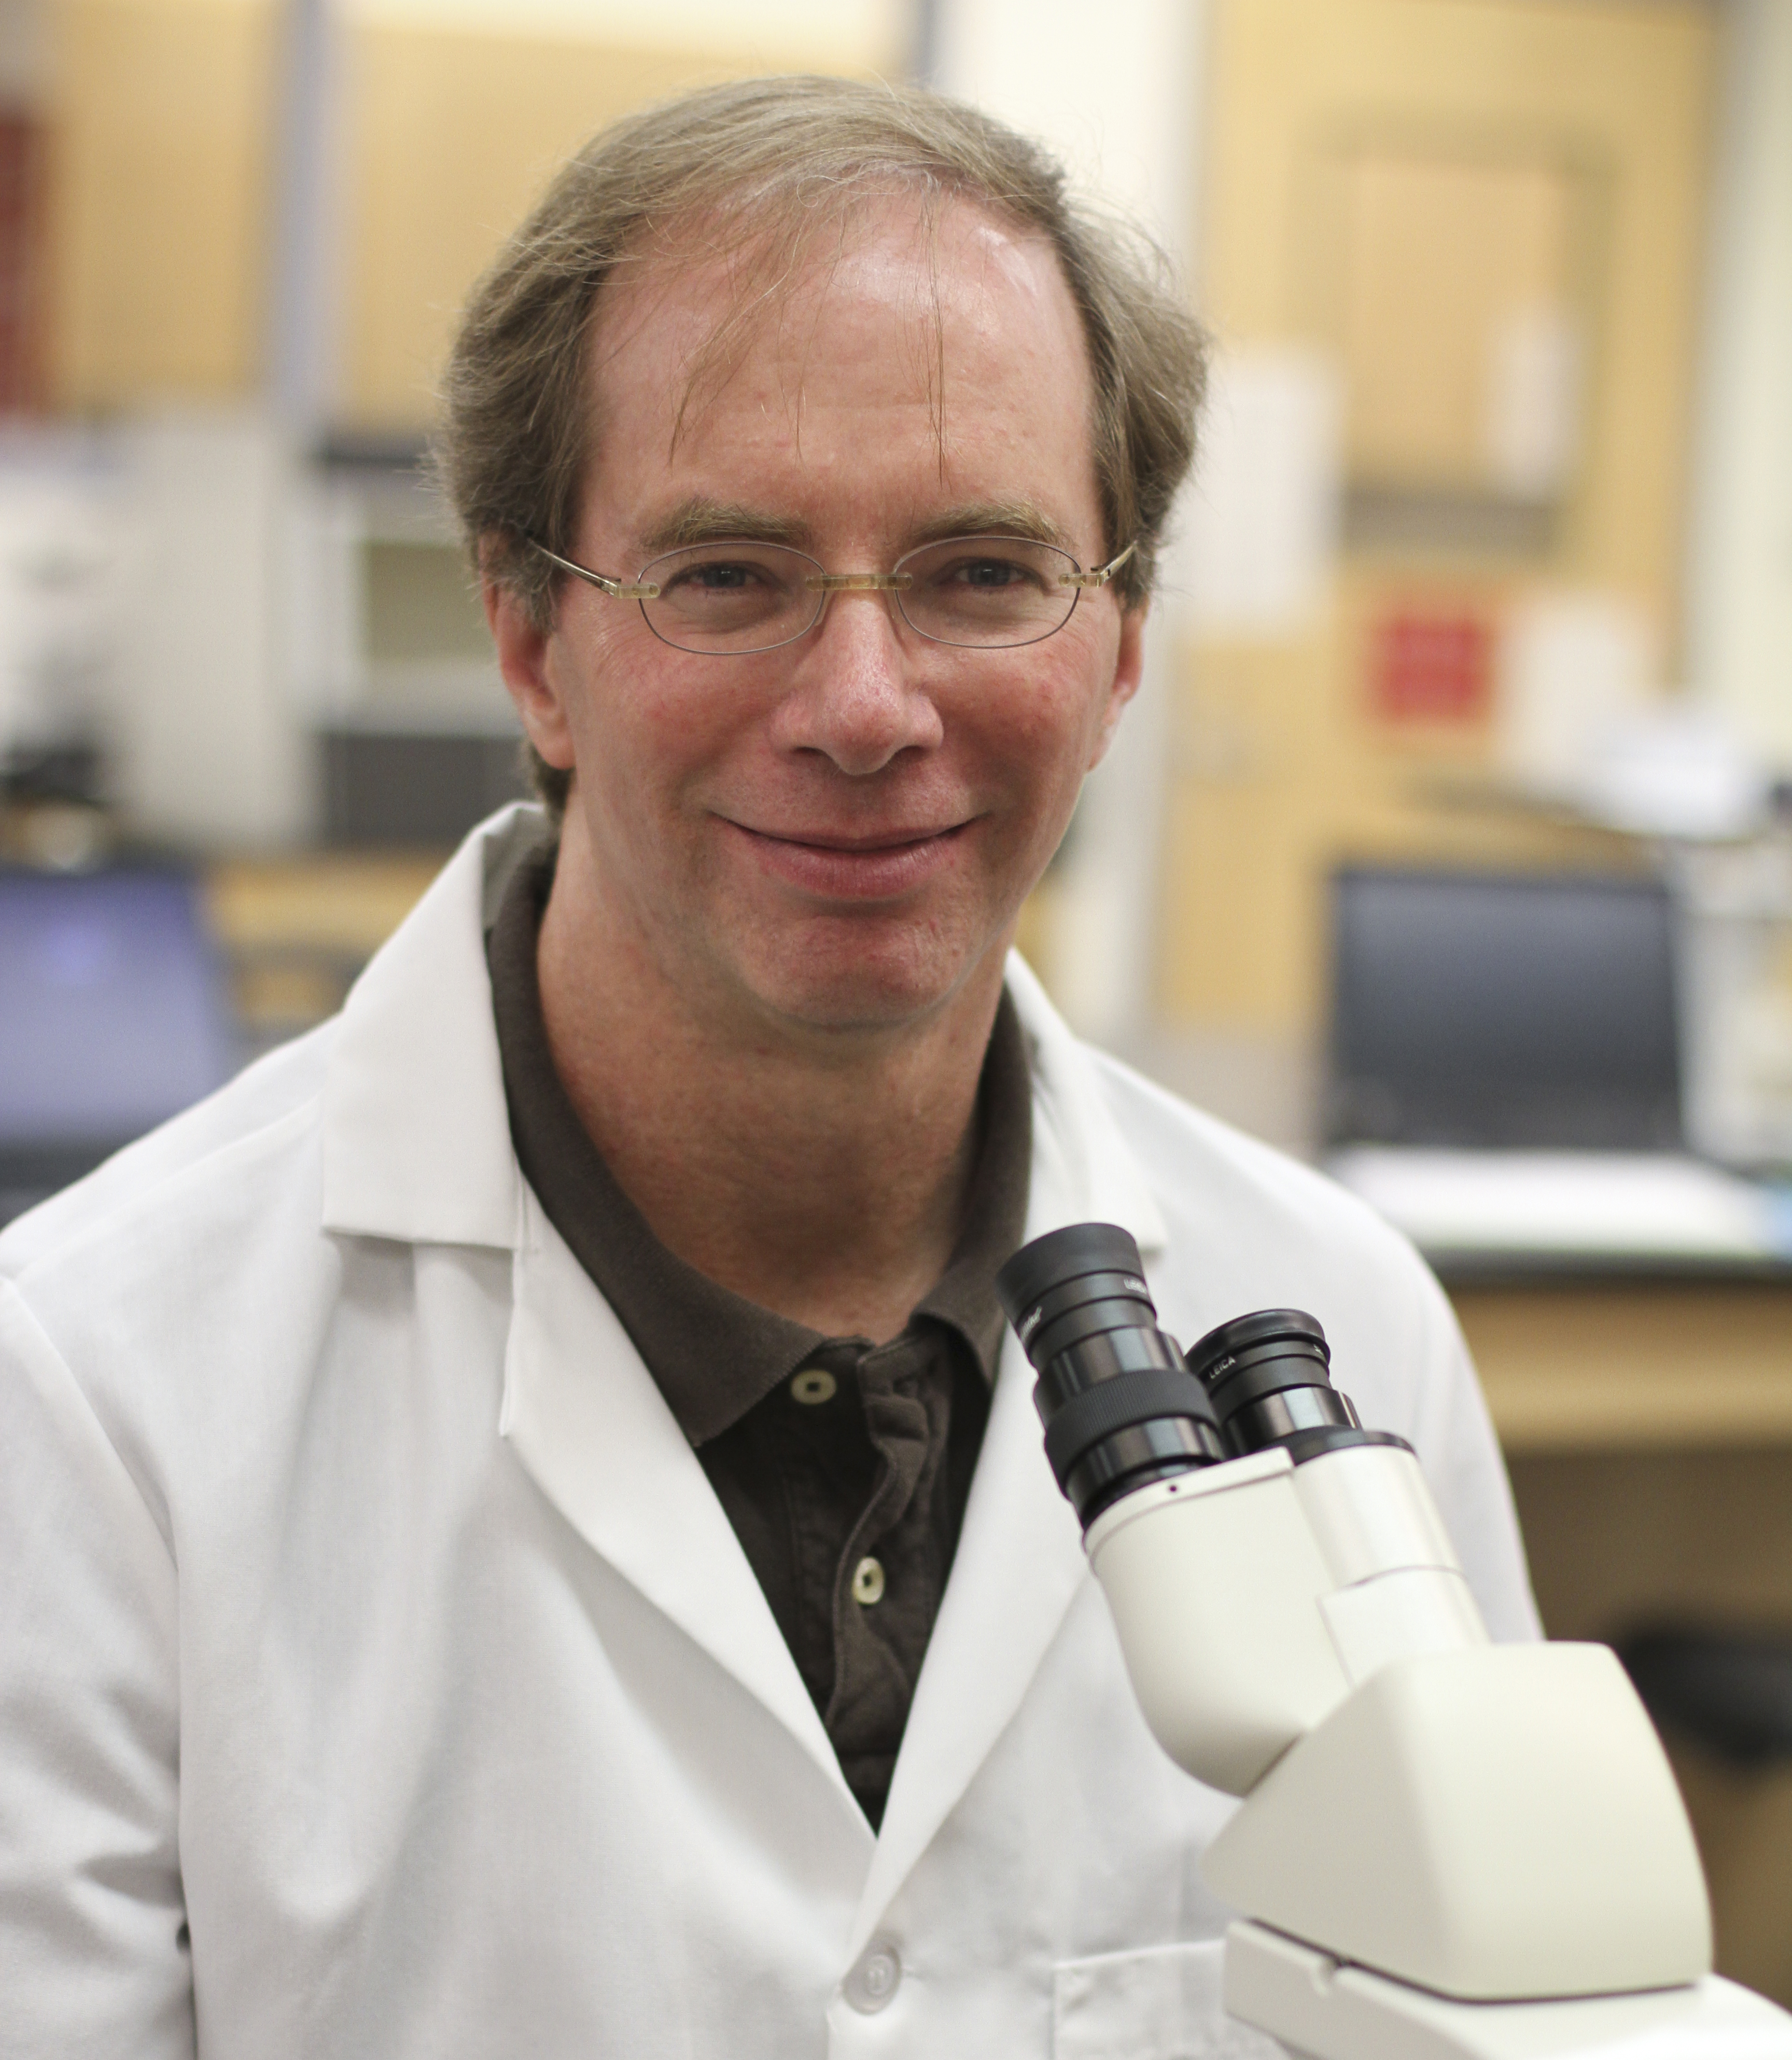 Dr. Roger Knowles, Professor of Biology and Neuroscience, at Drew